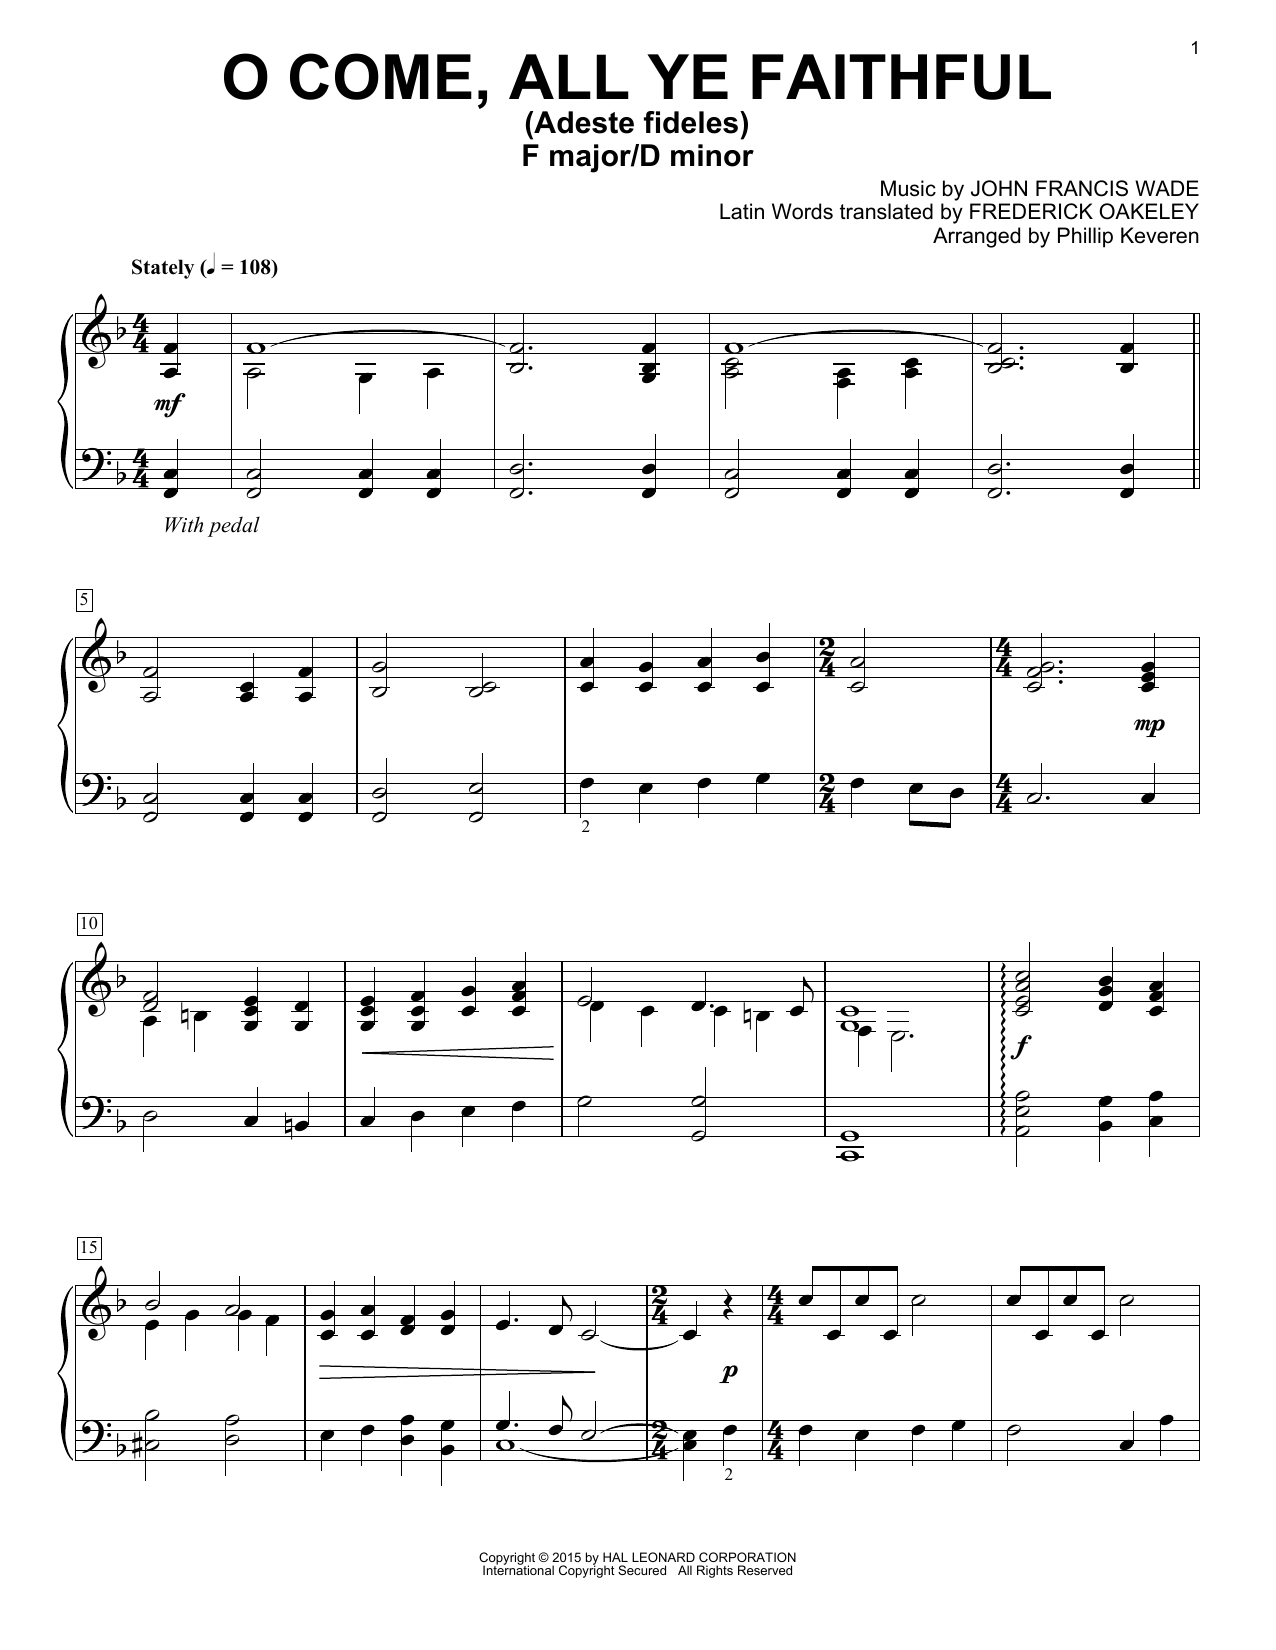 O Come, All Ye Faithful (Adeste Fideles) : Sheet Music Direct